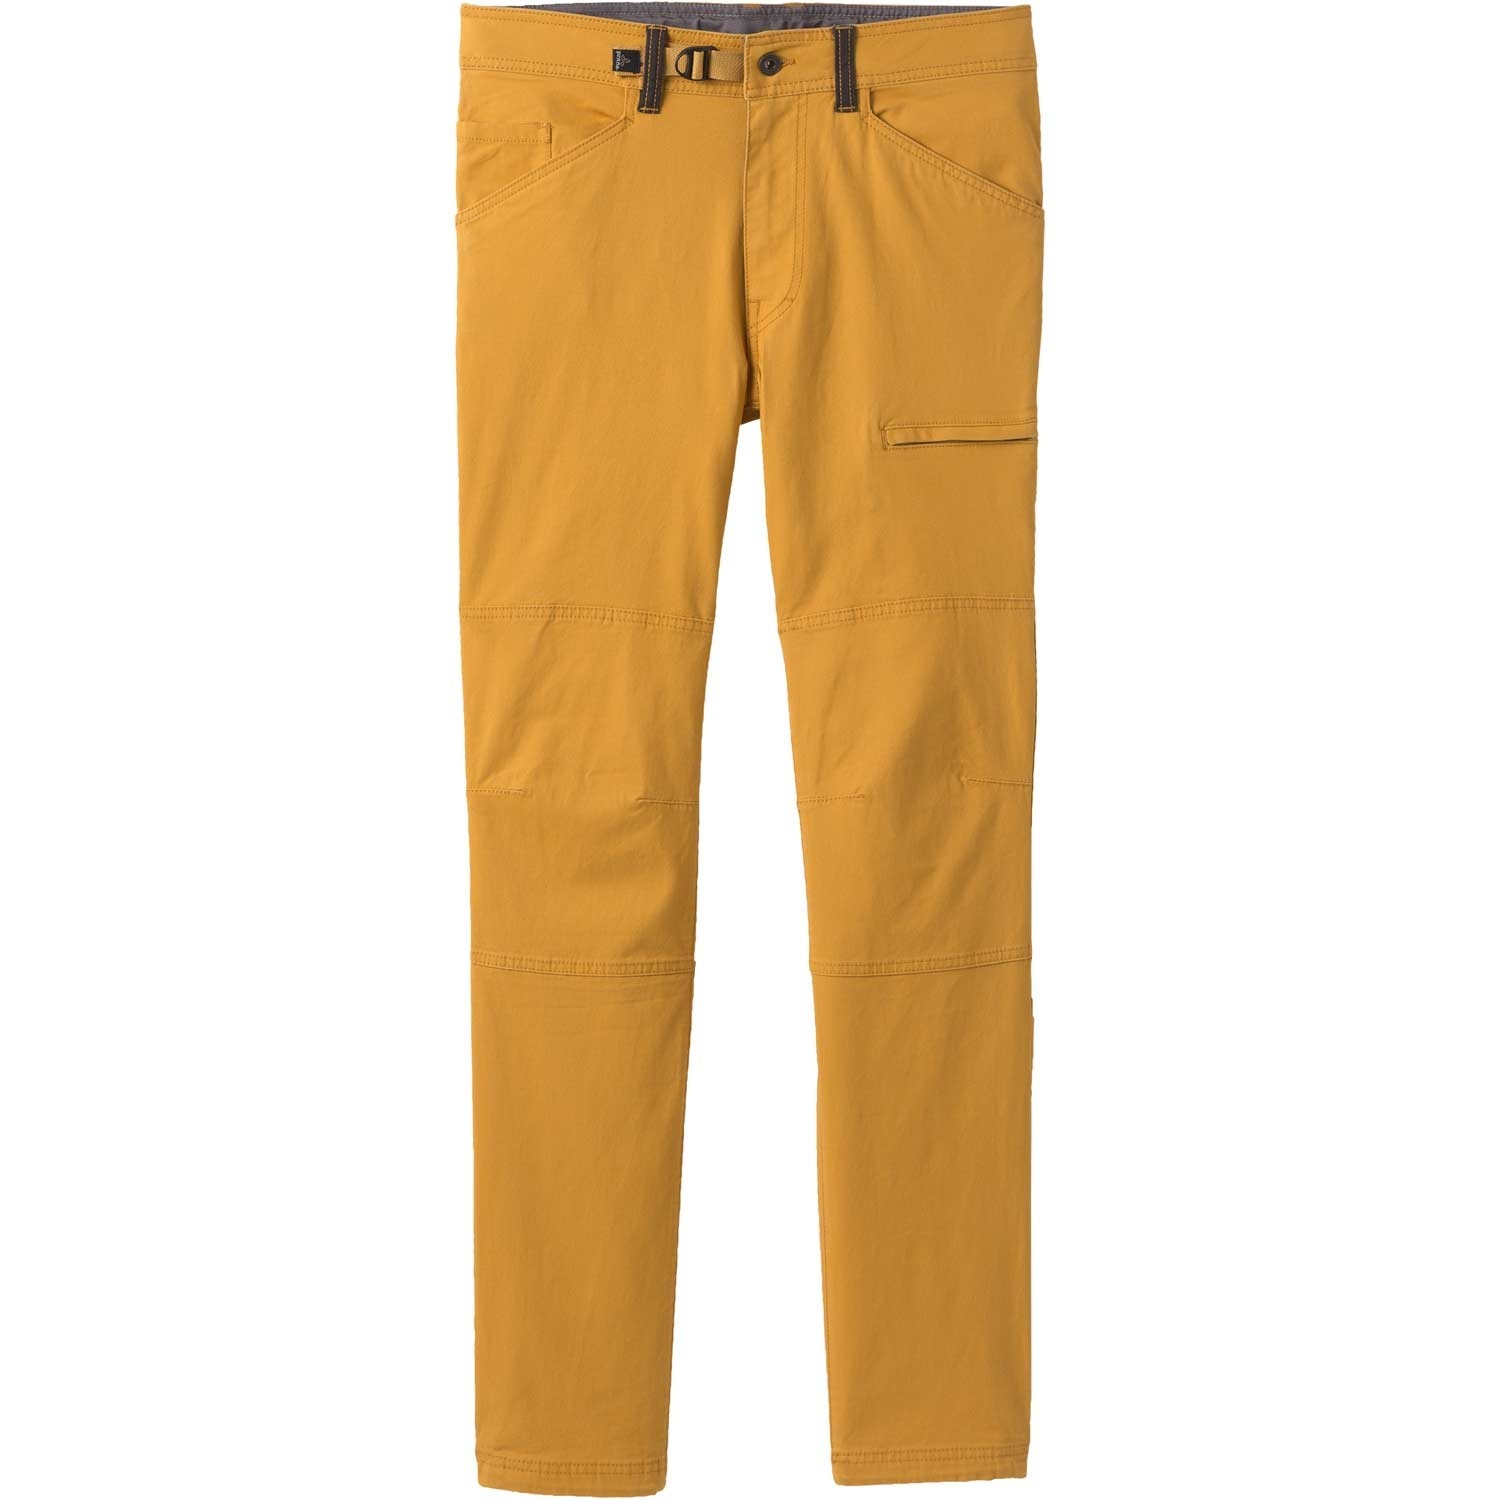 Prana Kragg Pant - Men's - Toffee